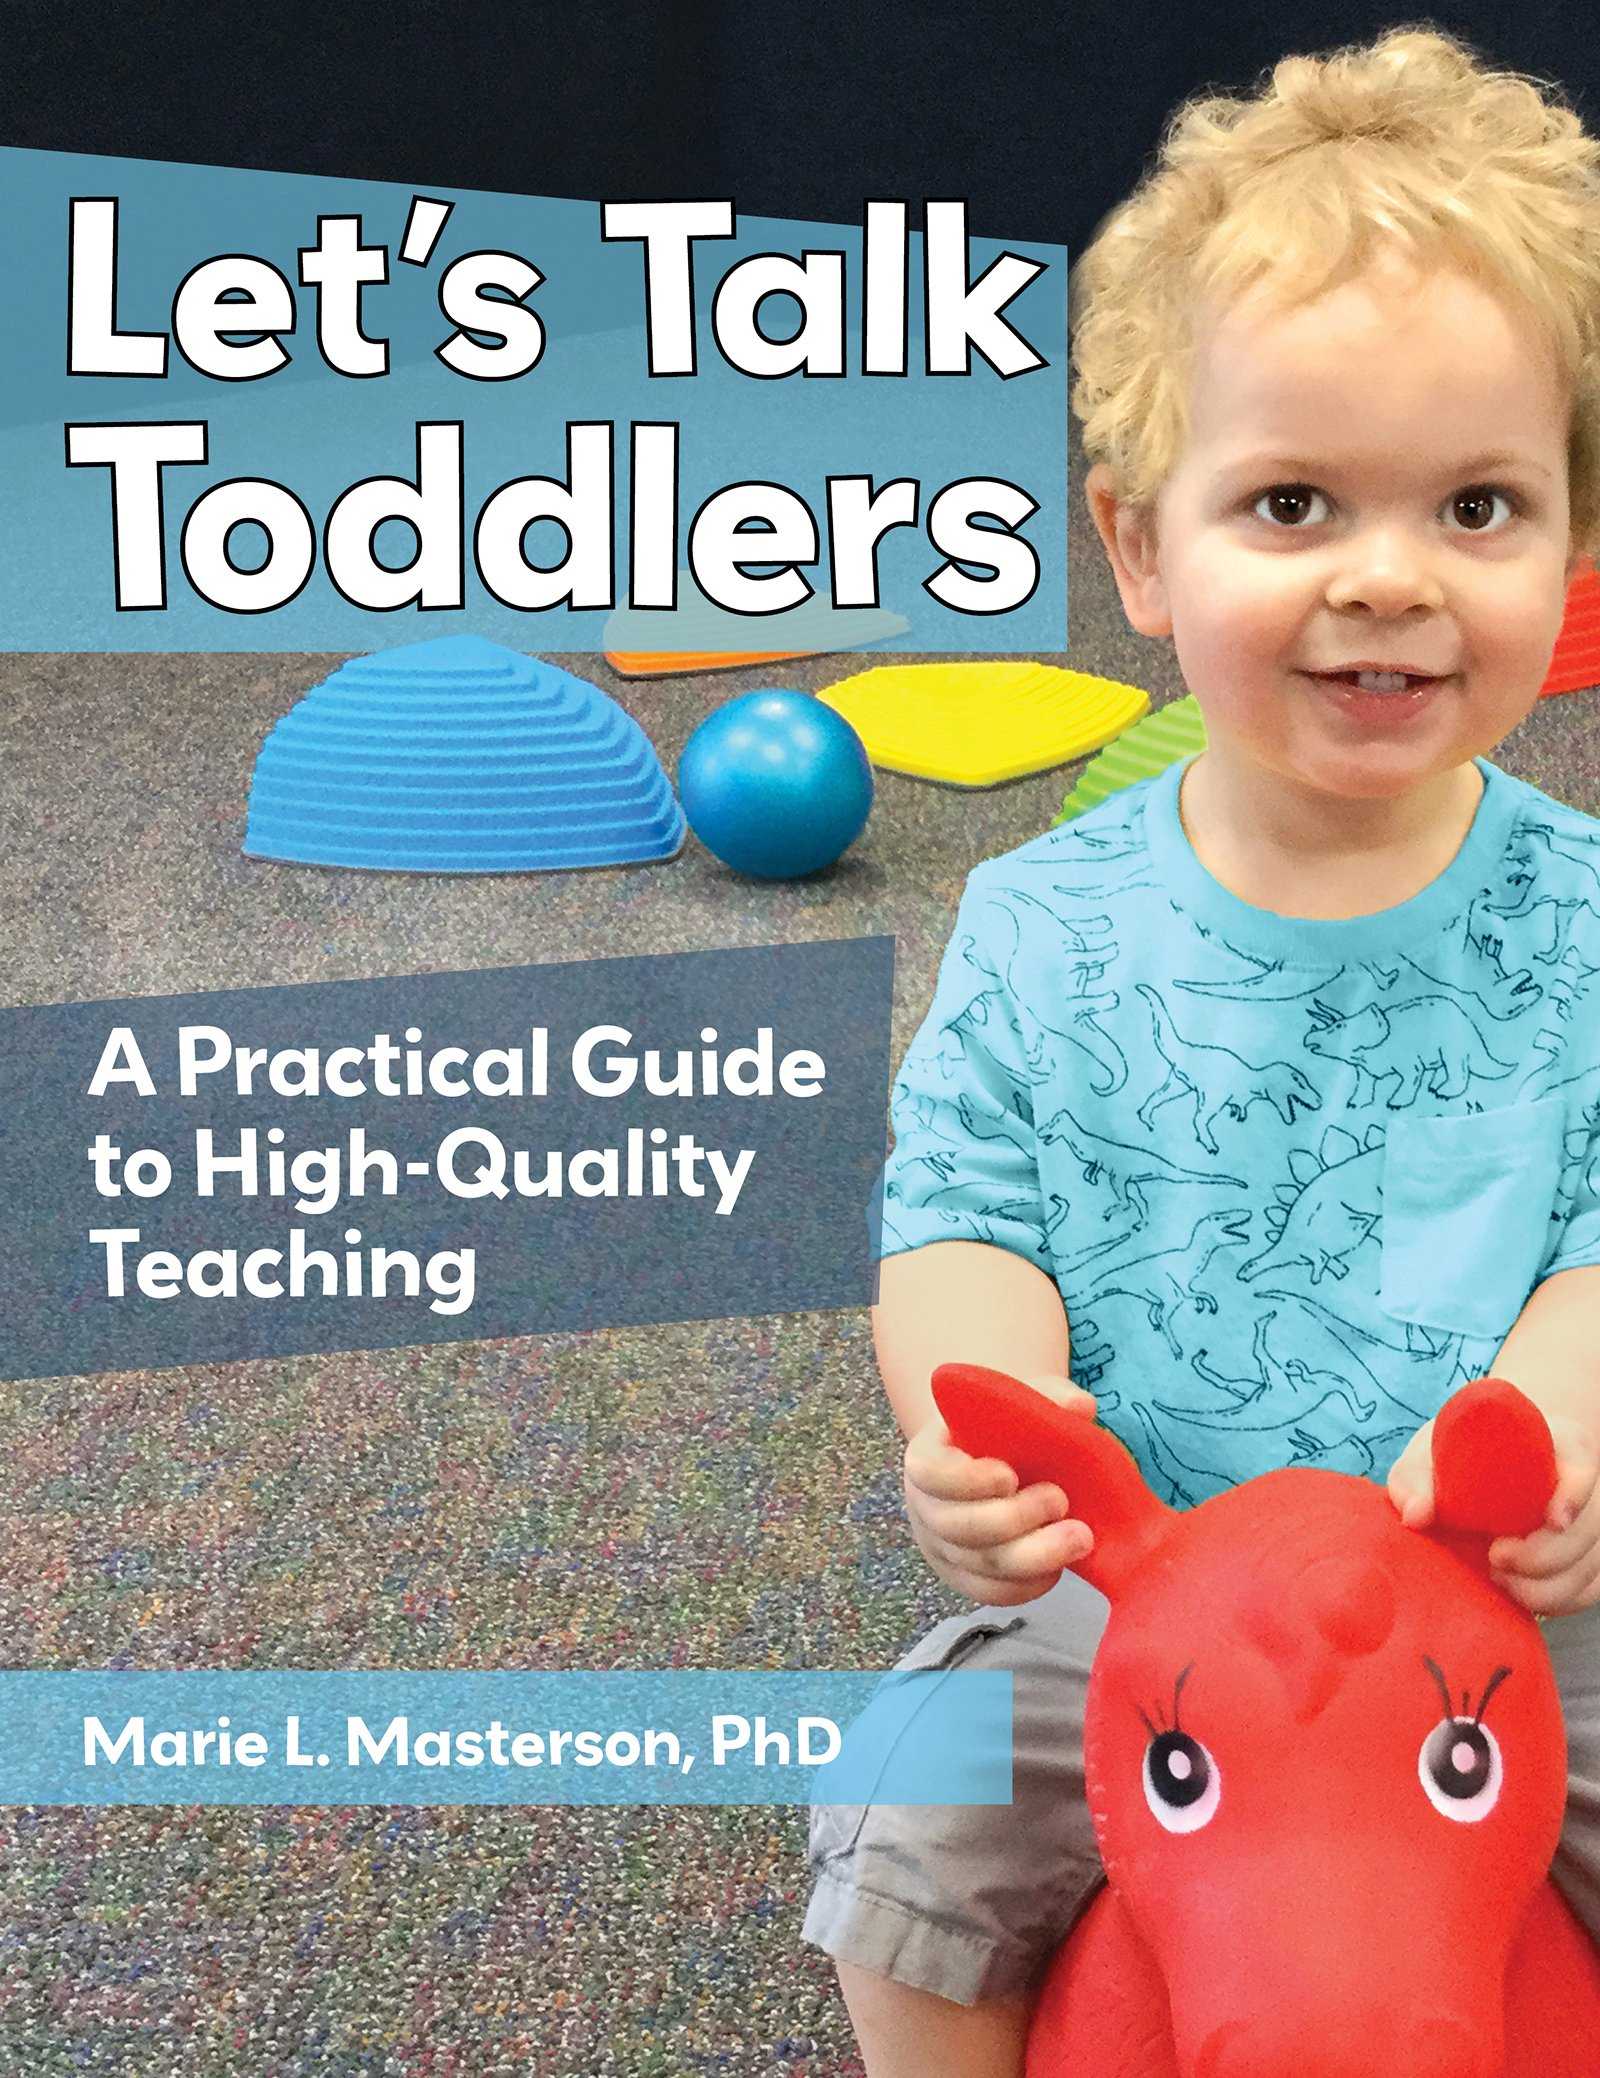 Why Toddlers Needs Lessons About >> Let S Talk Toddlers A Practical Guide To High Quality